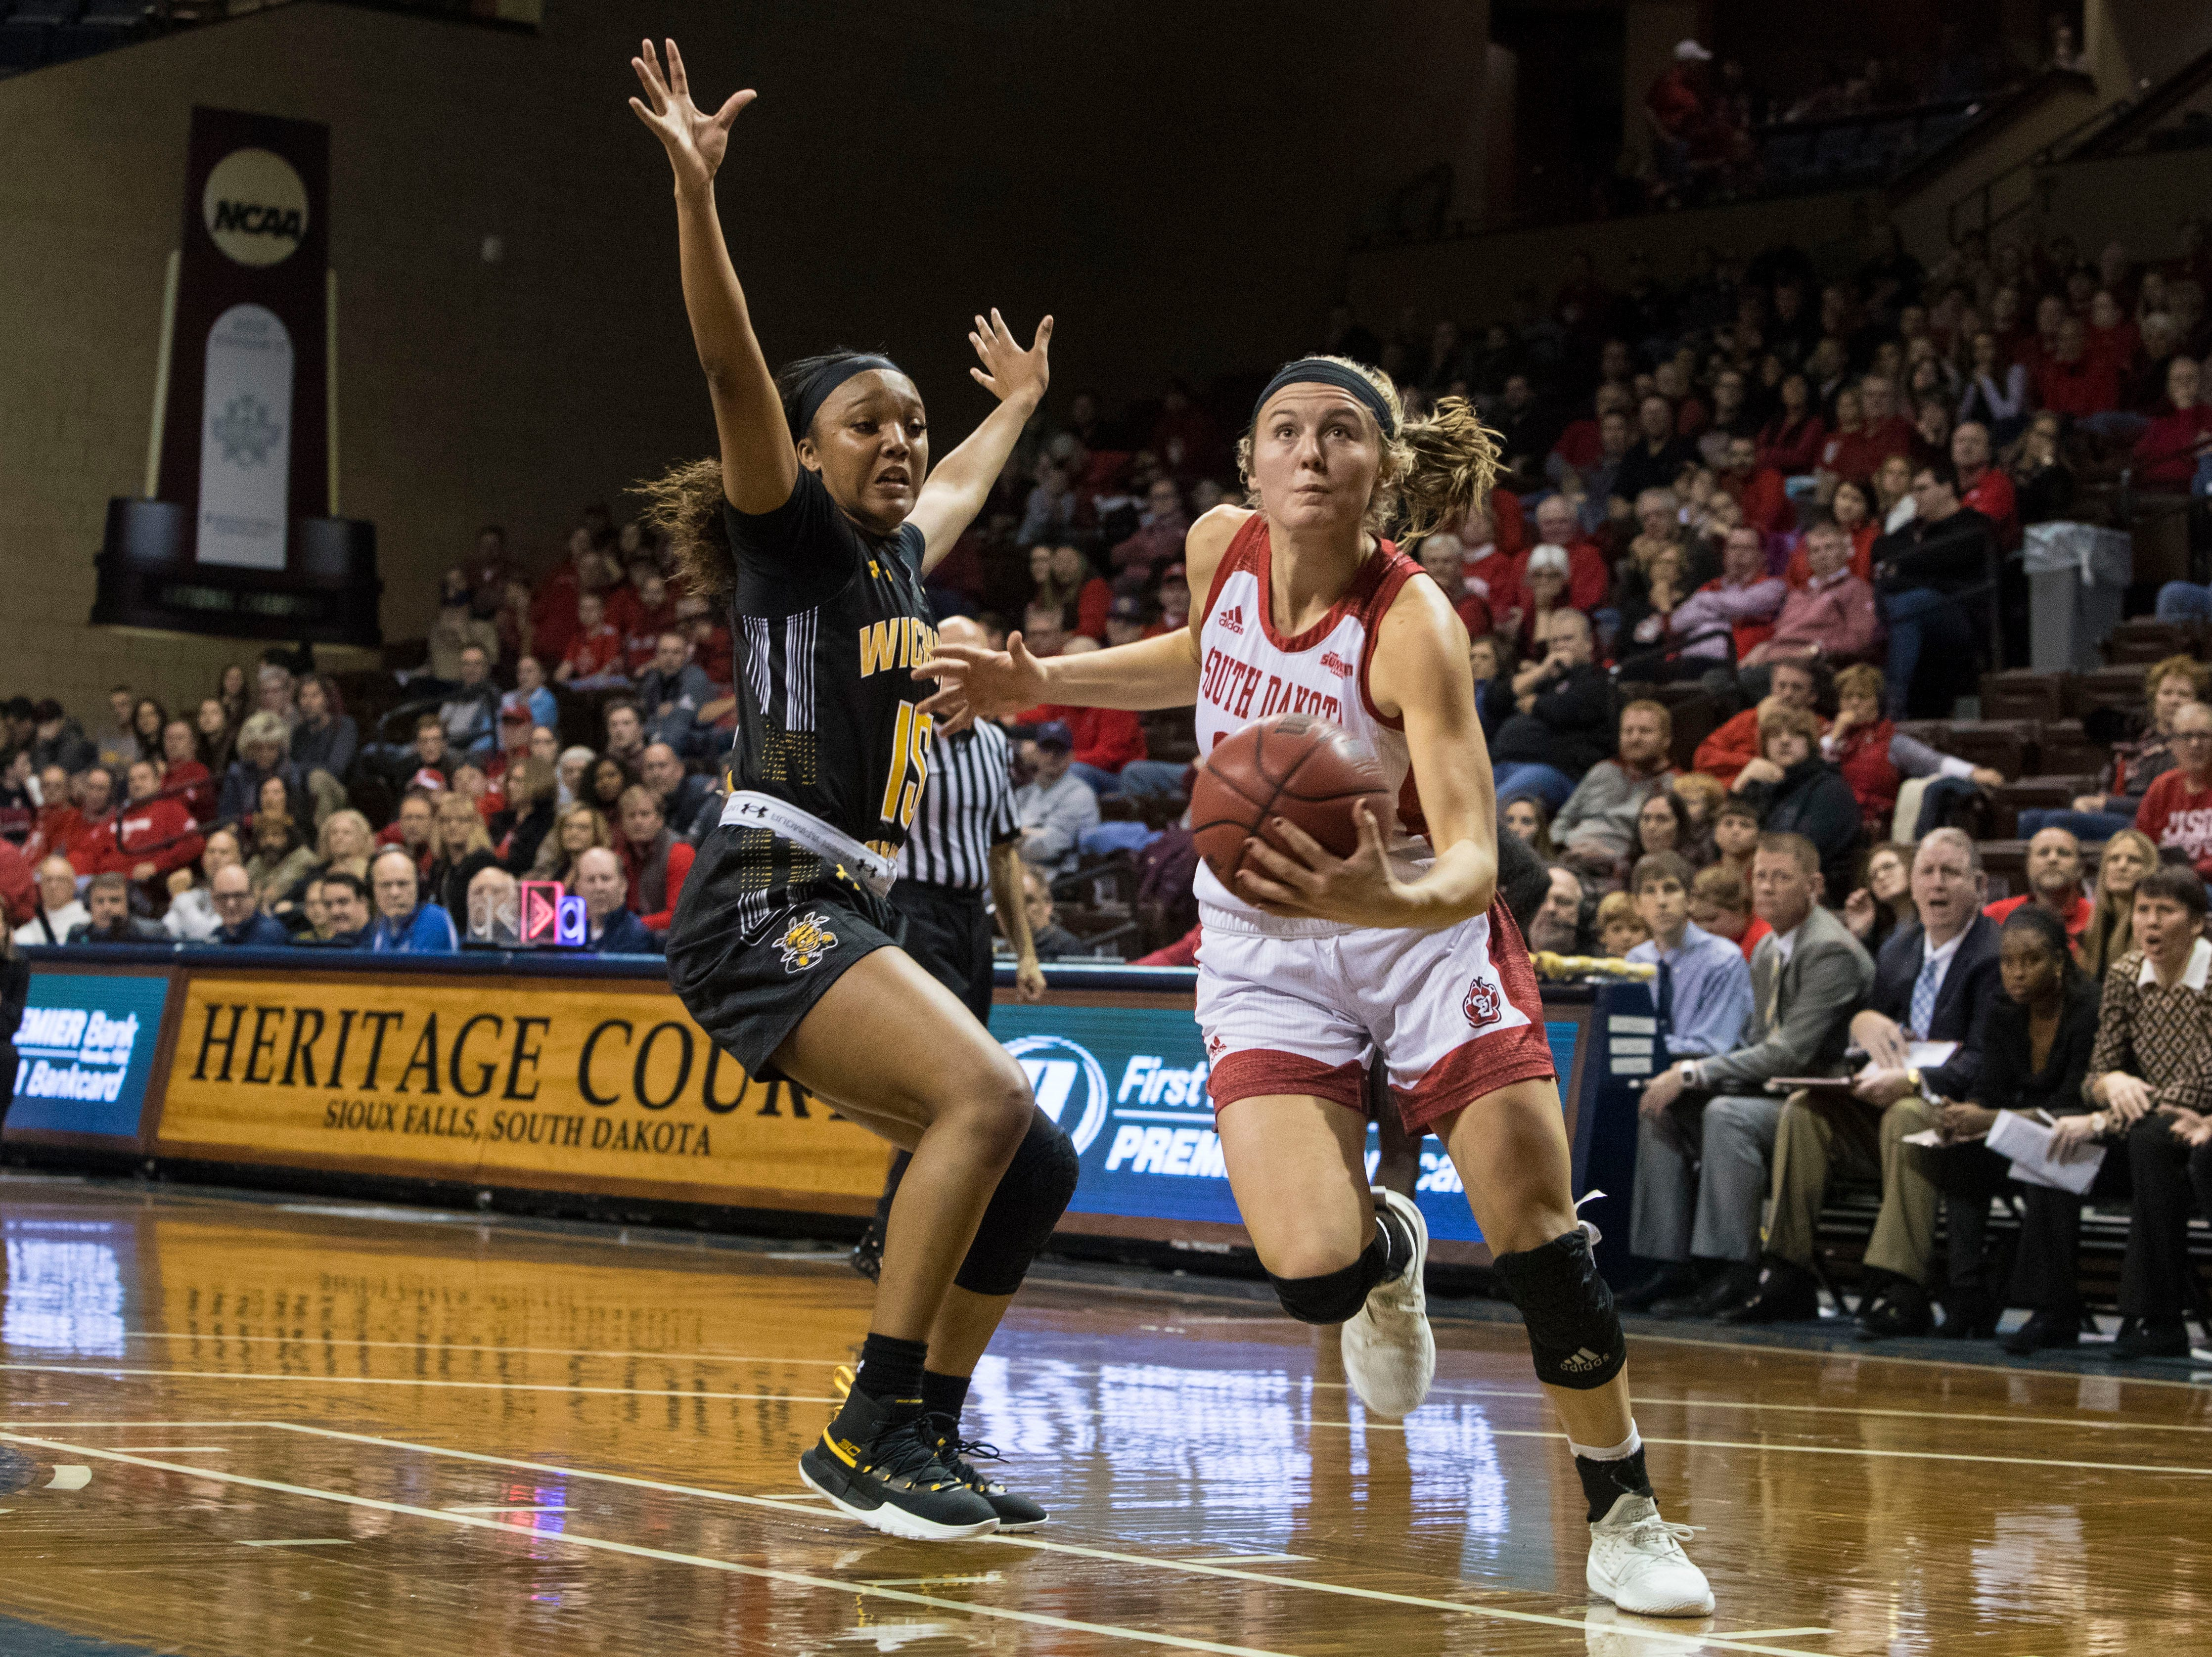 USD's Allison Arens (10) dribbles the ball past a Wichita State player at the Sanford Pentagon in Sioux Falls, S.D., Wednesday, Nov. 21, 2018.